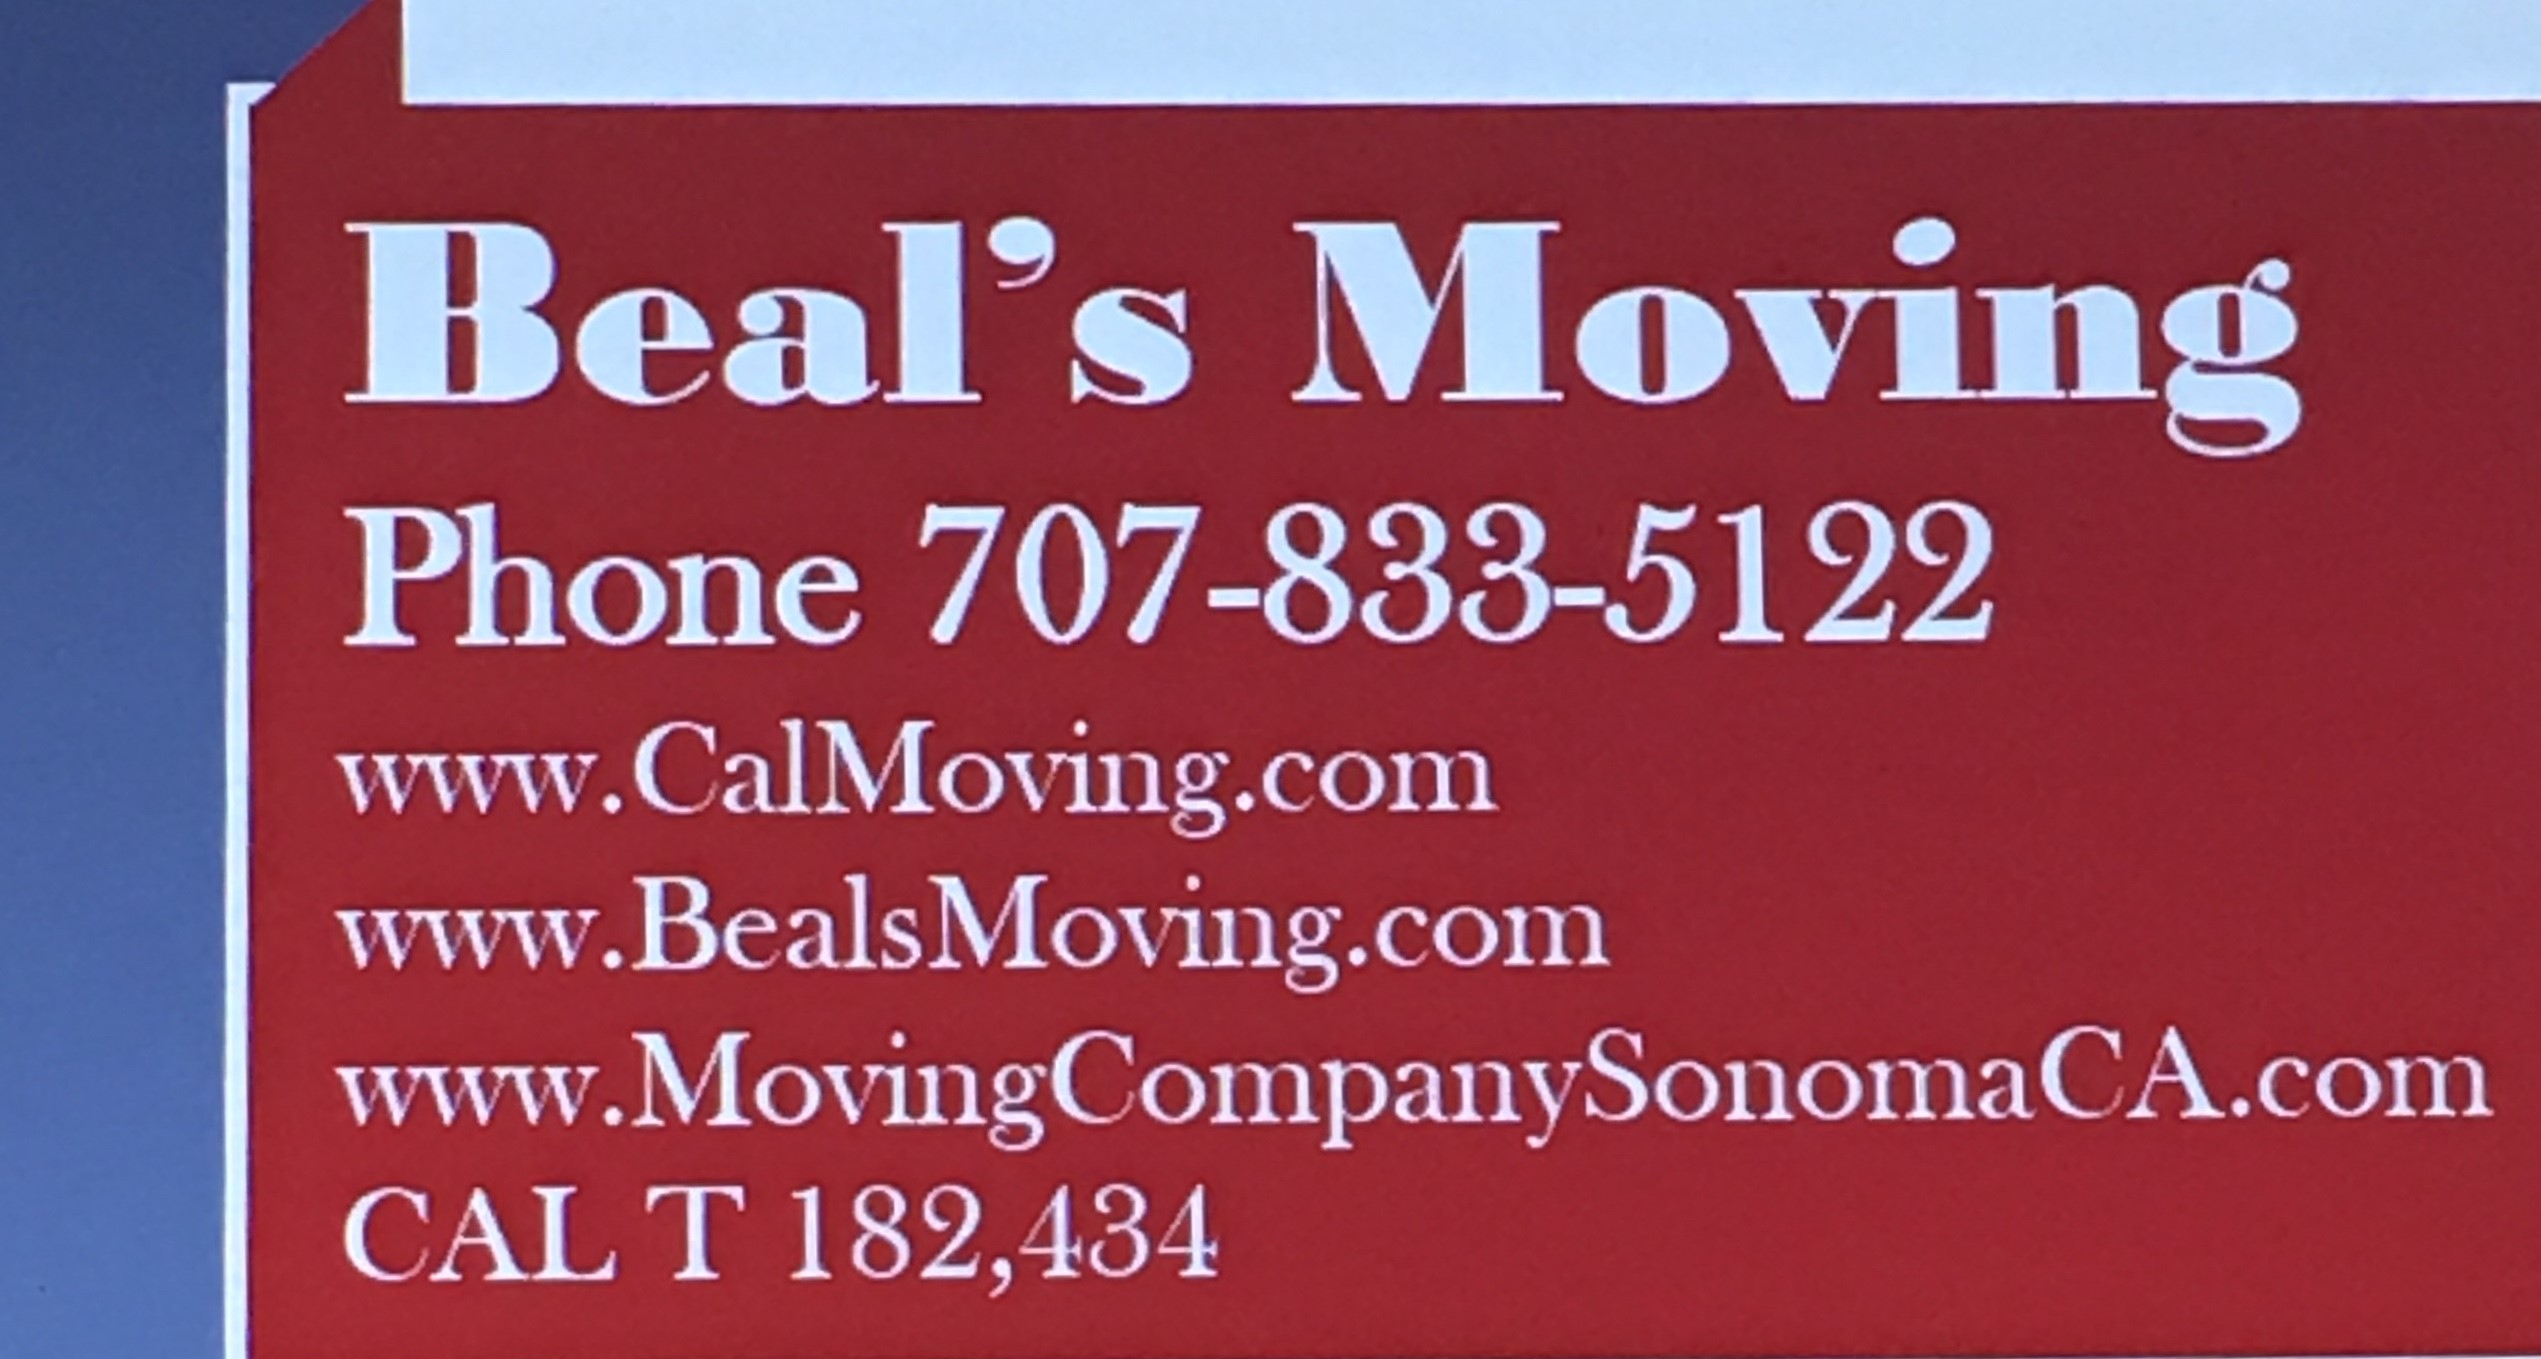 Beals Moving